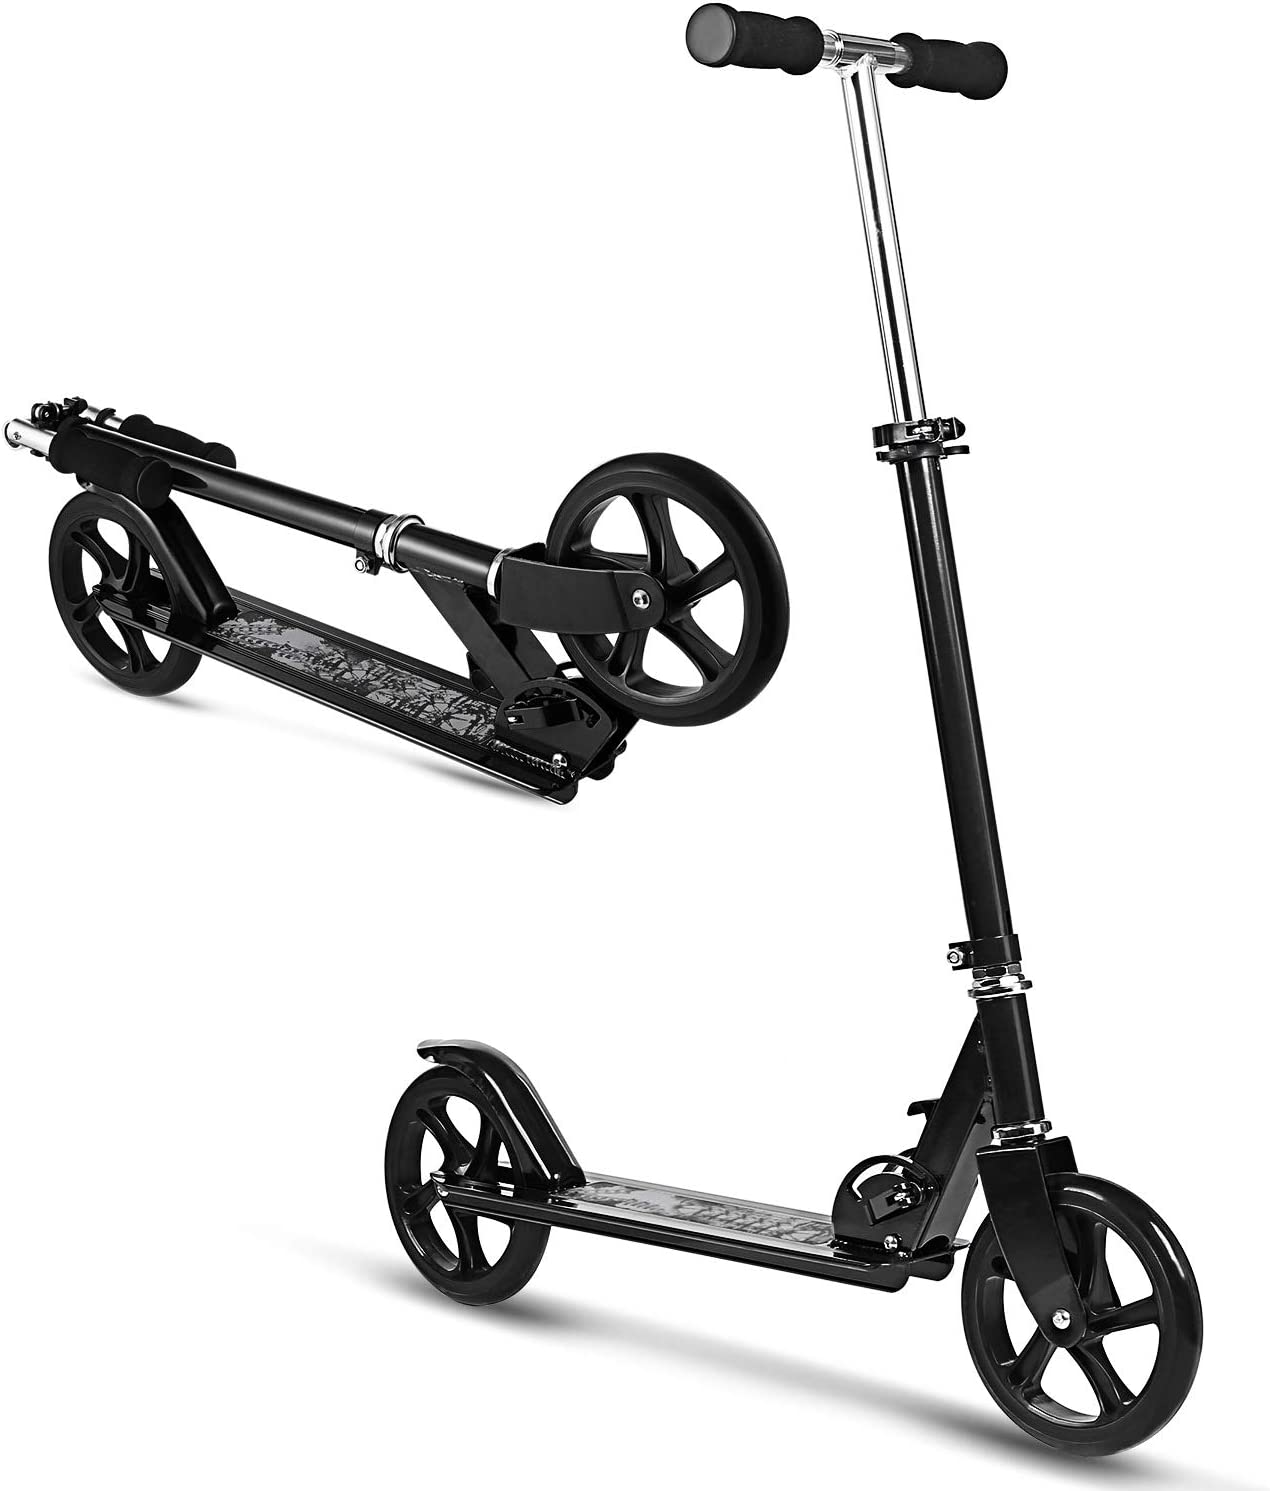 WeSkate Scooter for Adults Teens, Big Wheels Scooter Easy Folding Kick Scooter Durable Push Scooter Support 220lbs Suitable for Age 8 Up Teens Adults